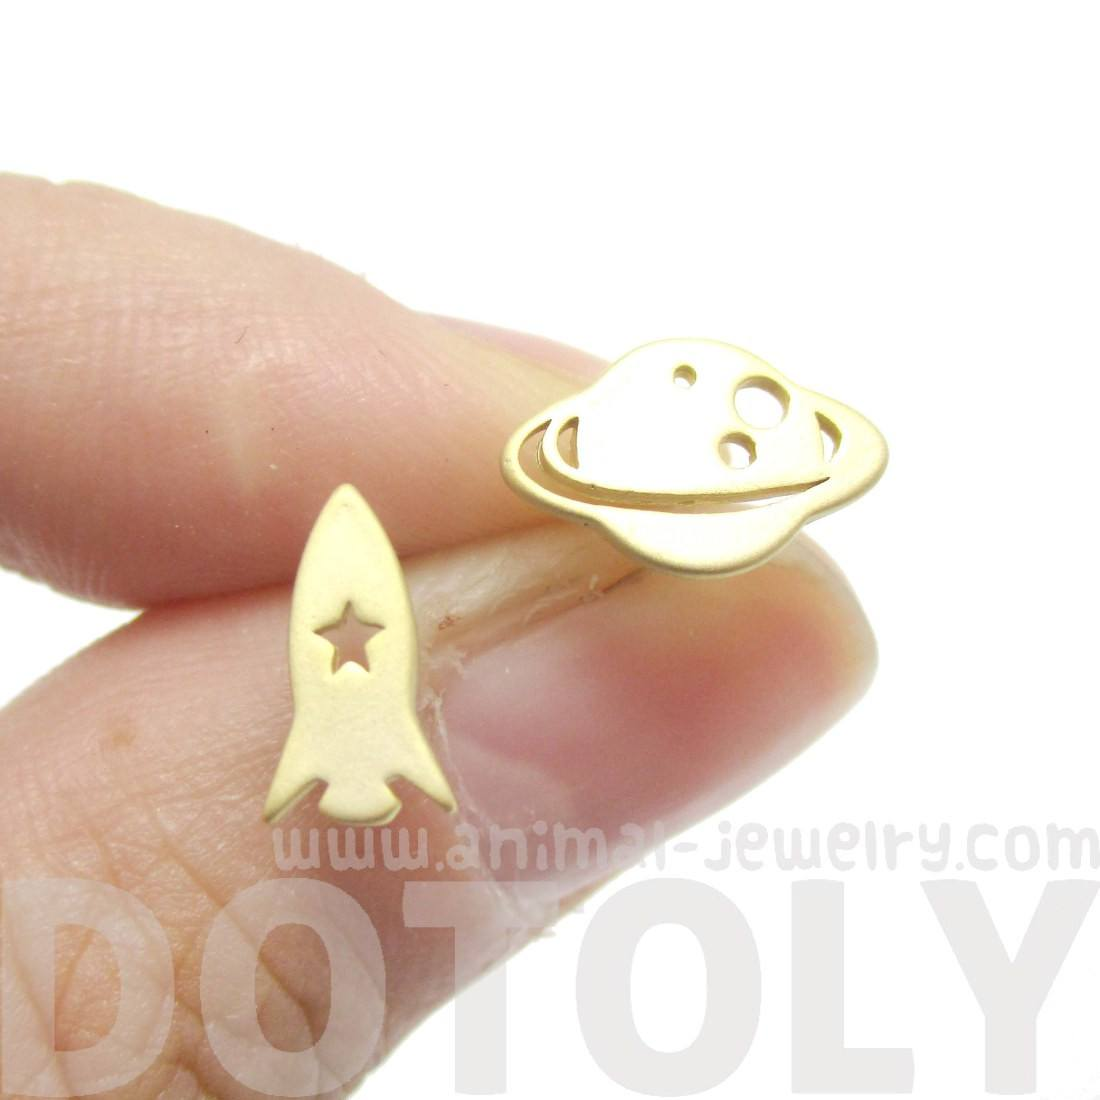 Saturn Rocket Shaped Space Themed Stud Earrings in Gold